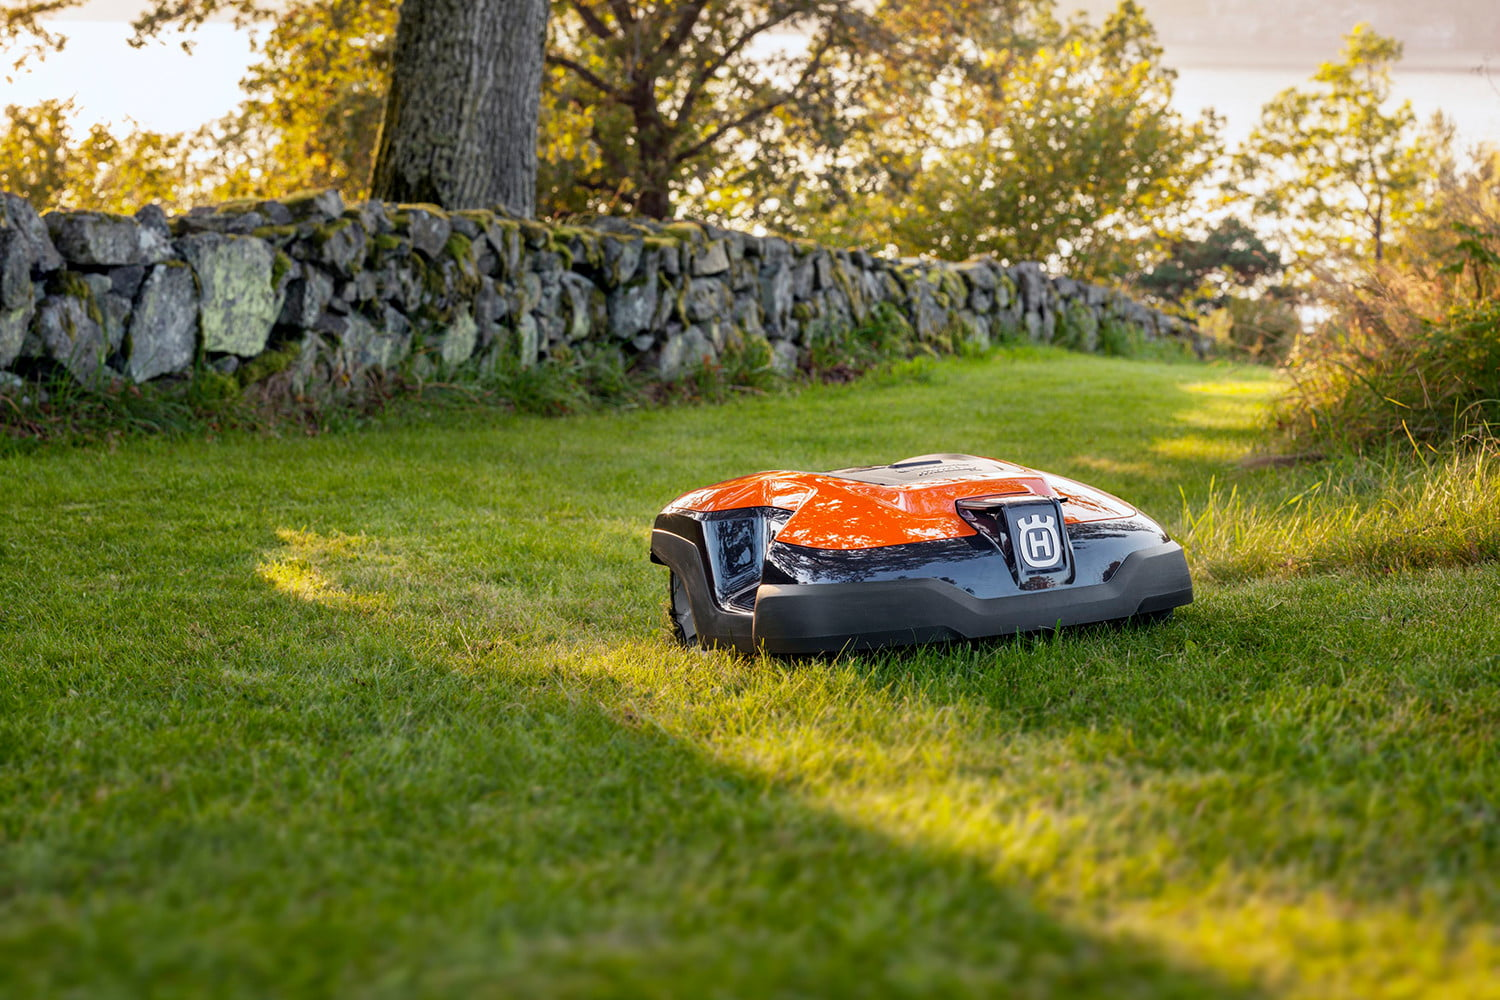 Robot Lawnmowers Are Making Their Way Onto American Grass